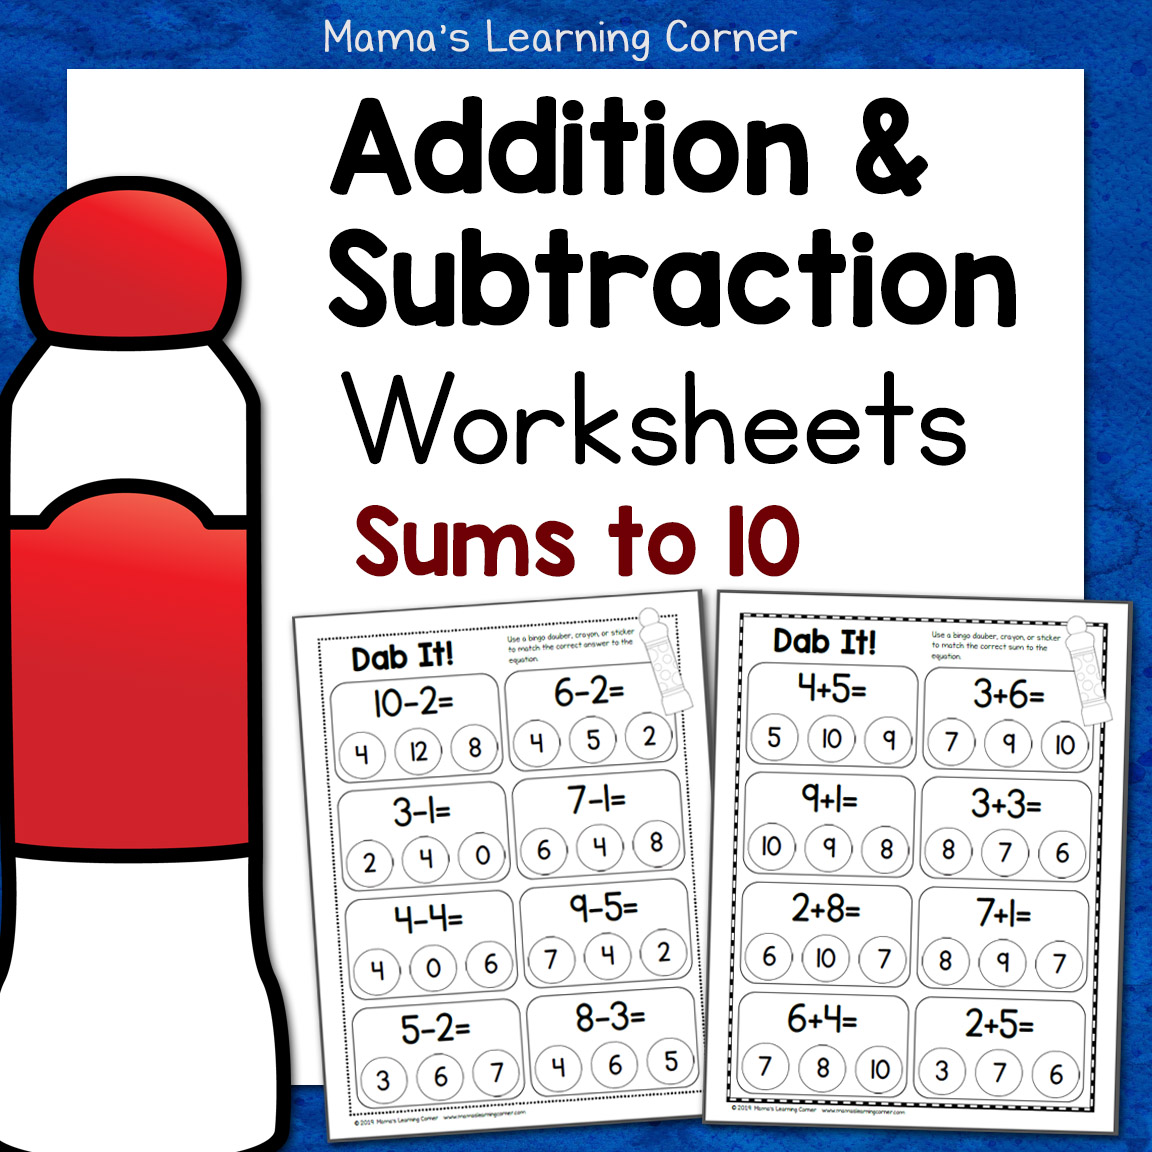 hight resolution of Dab It! Addition and Subtraction Worksheets - Mamas Learning Corner